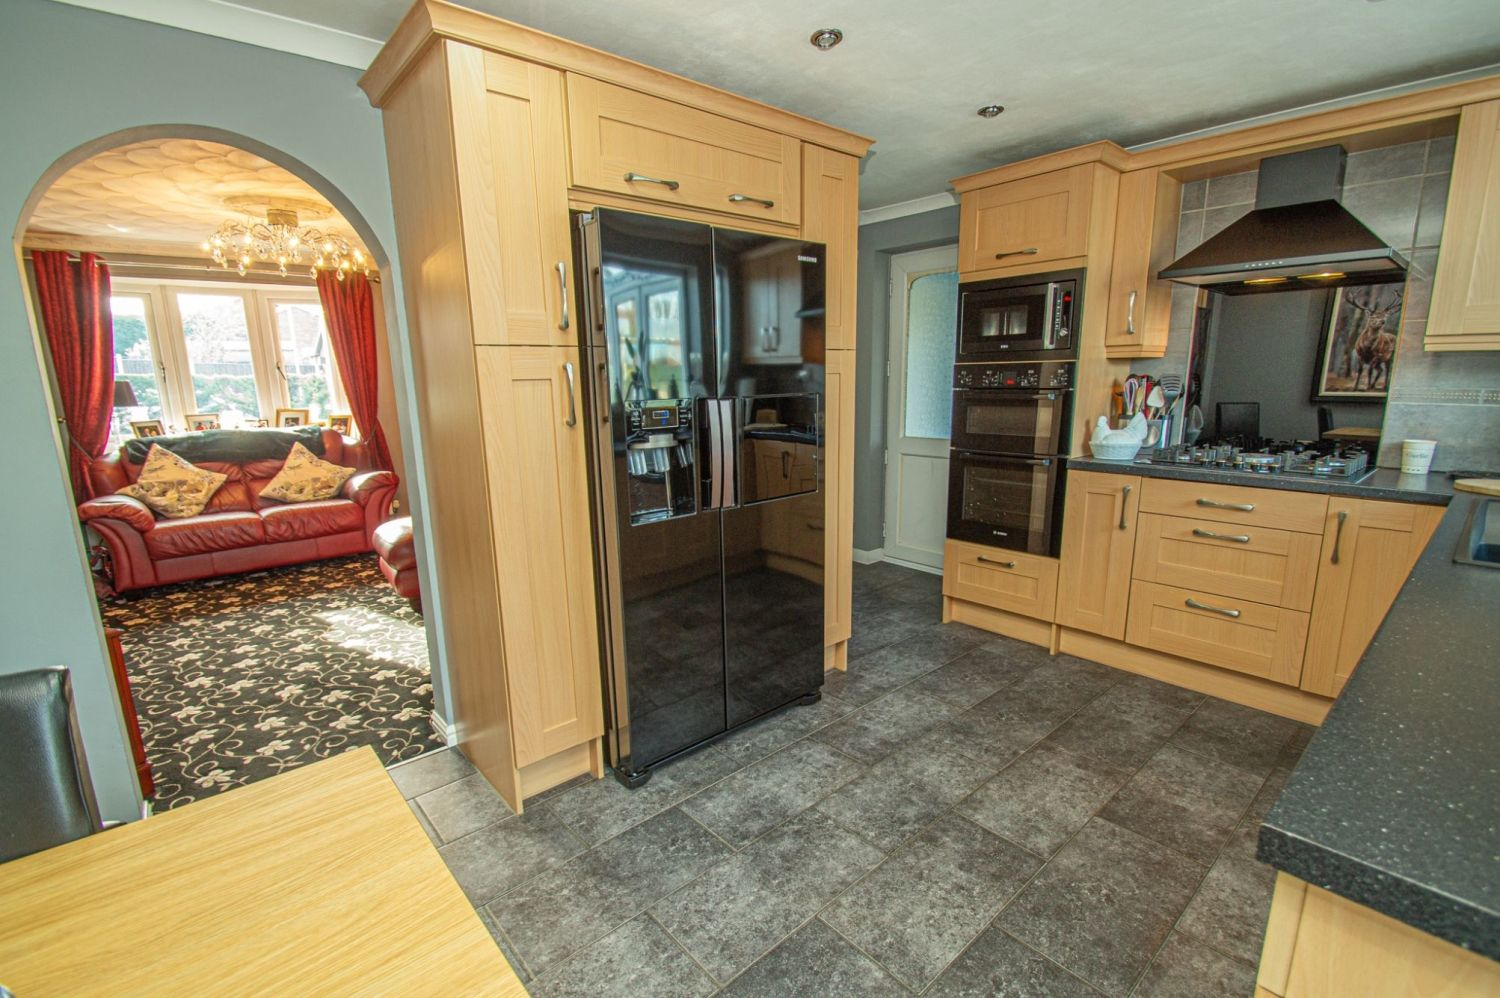 3 bed detached for sale in Broomehill Close, Brierley Hill 5